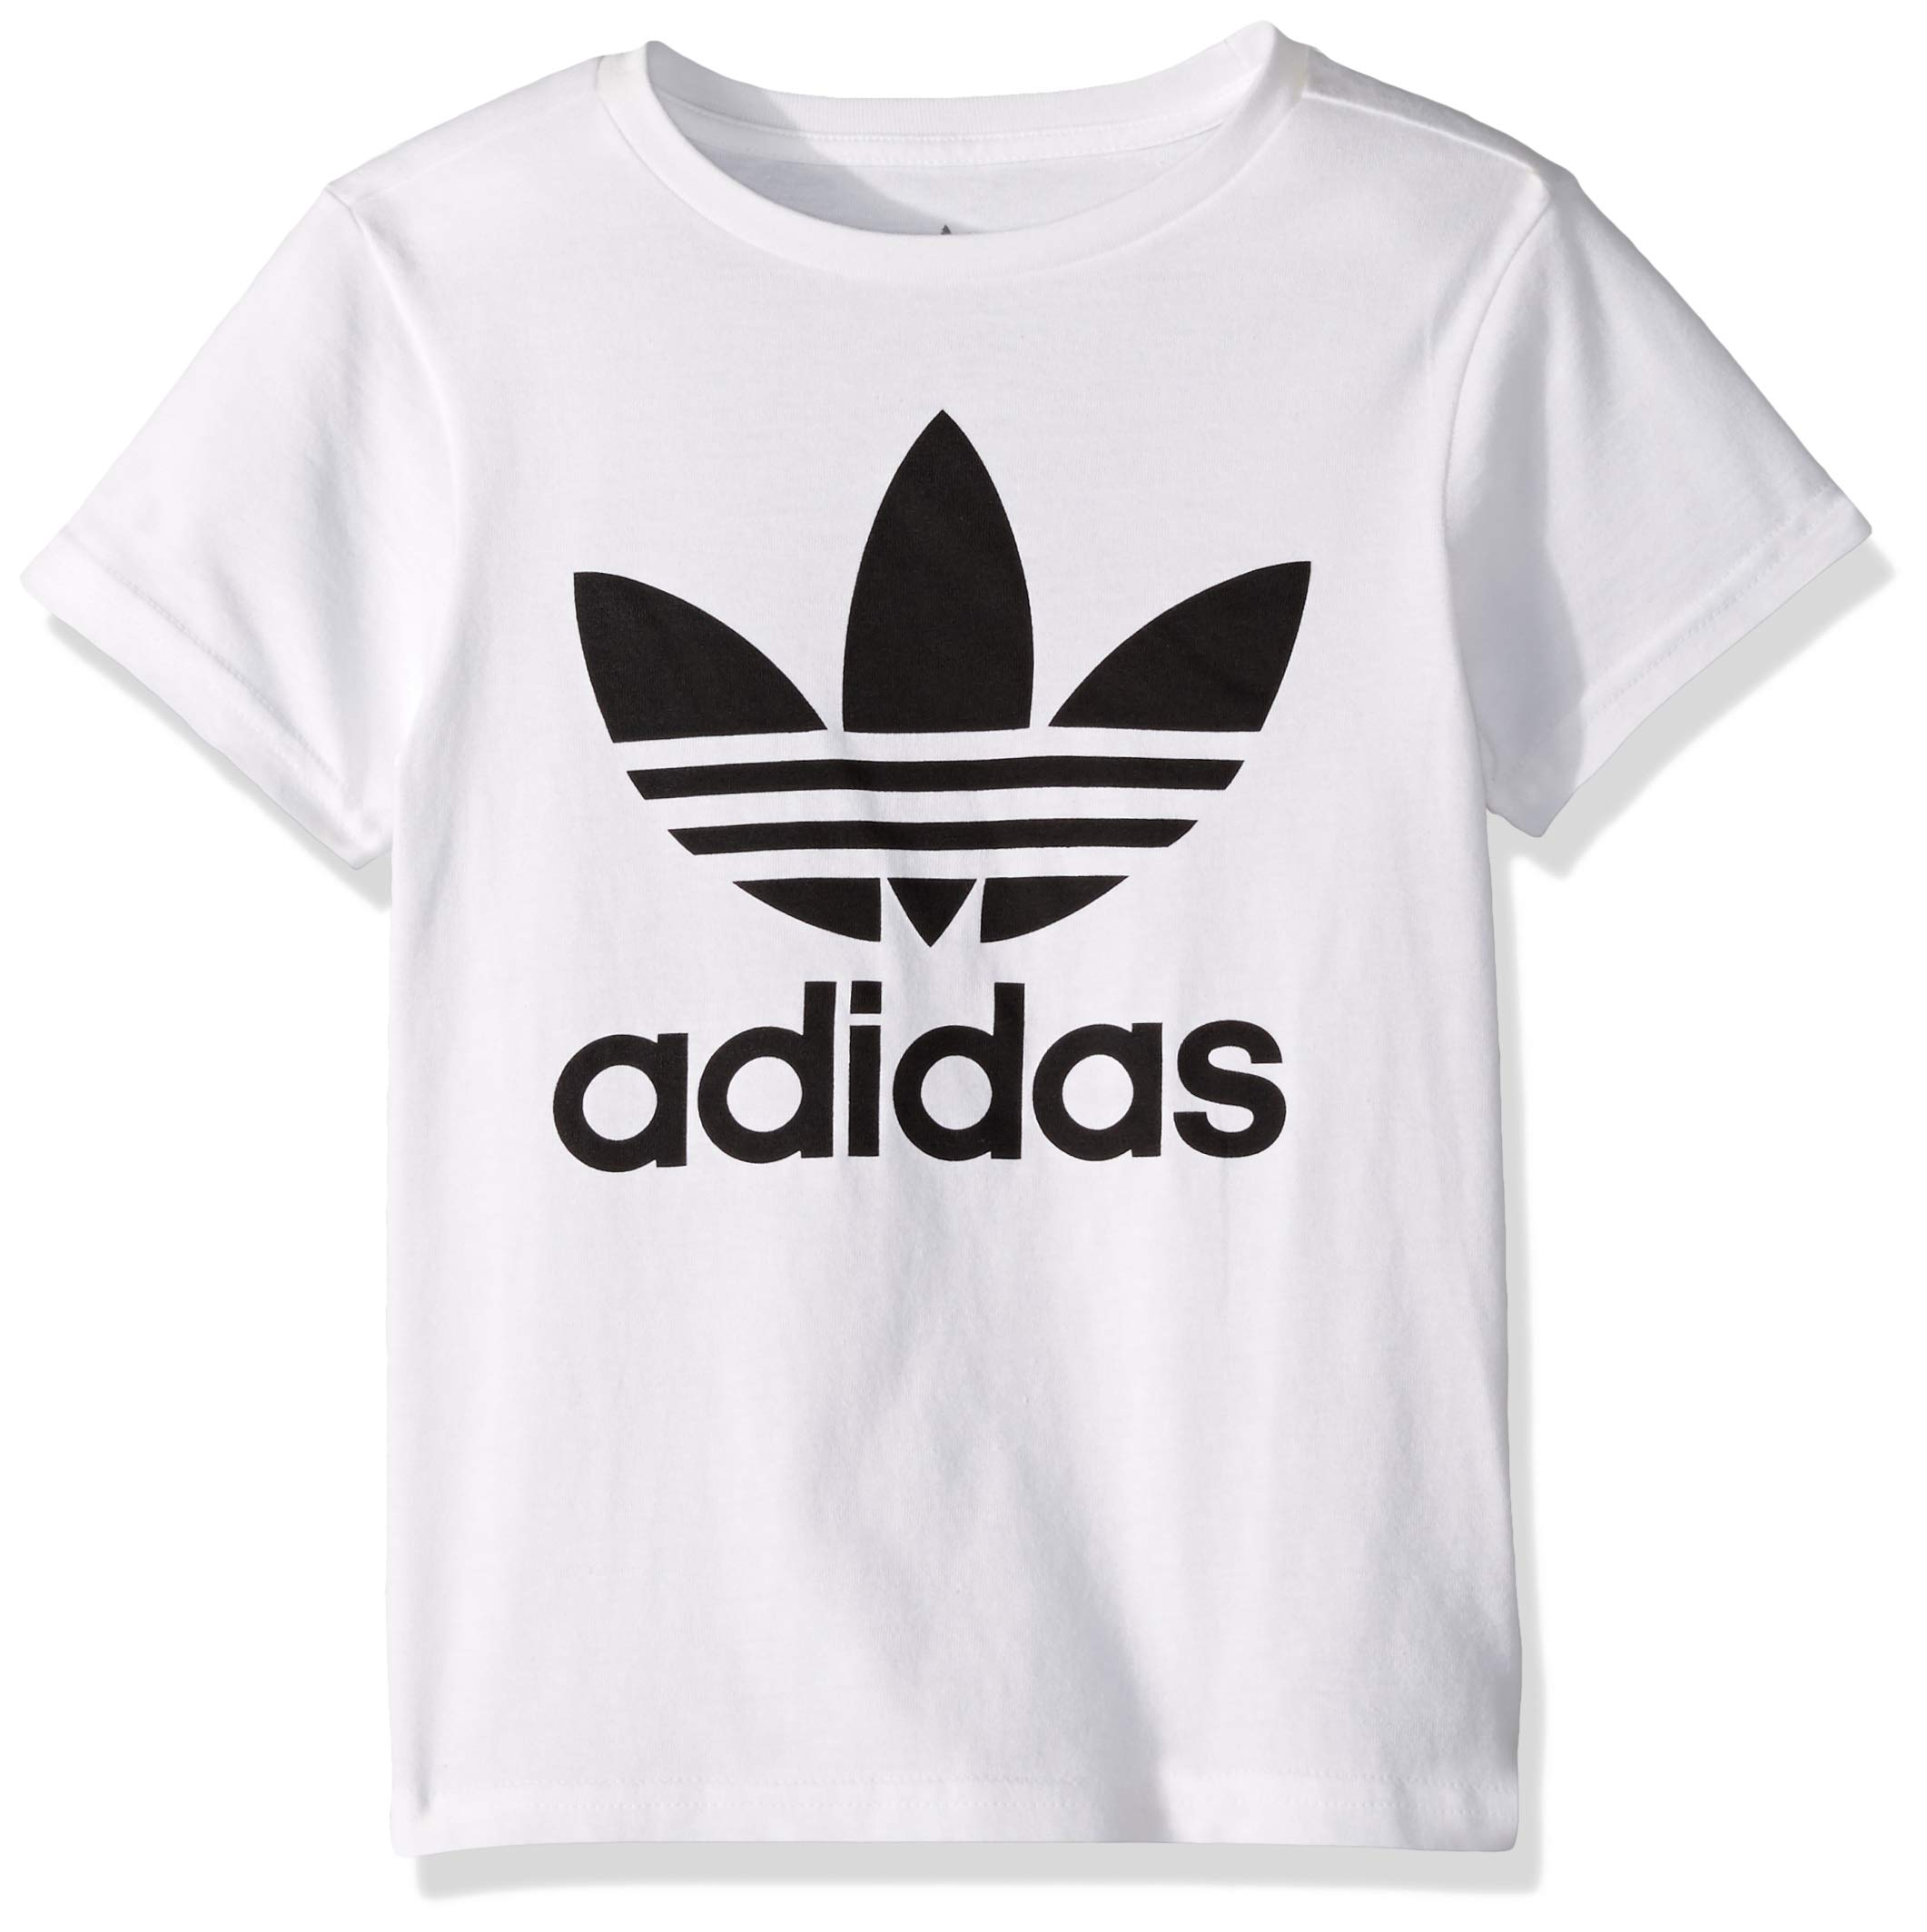 adidas Originals Boys' Big Trefoil Tee, White/Black, Medium